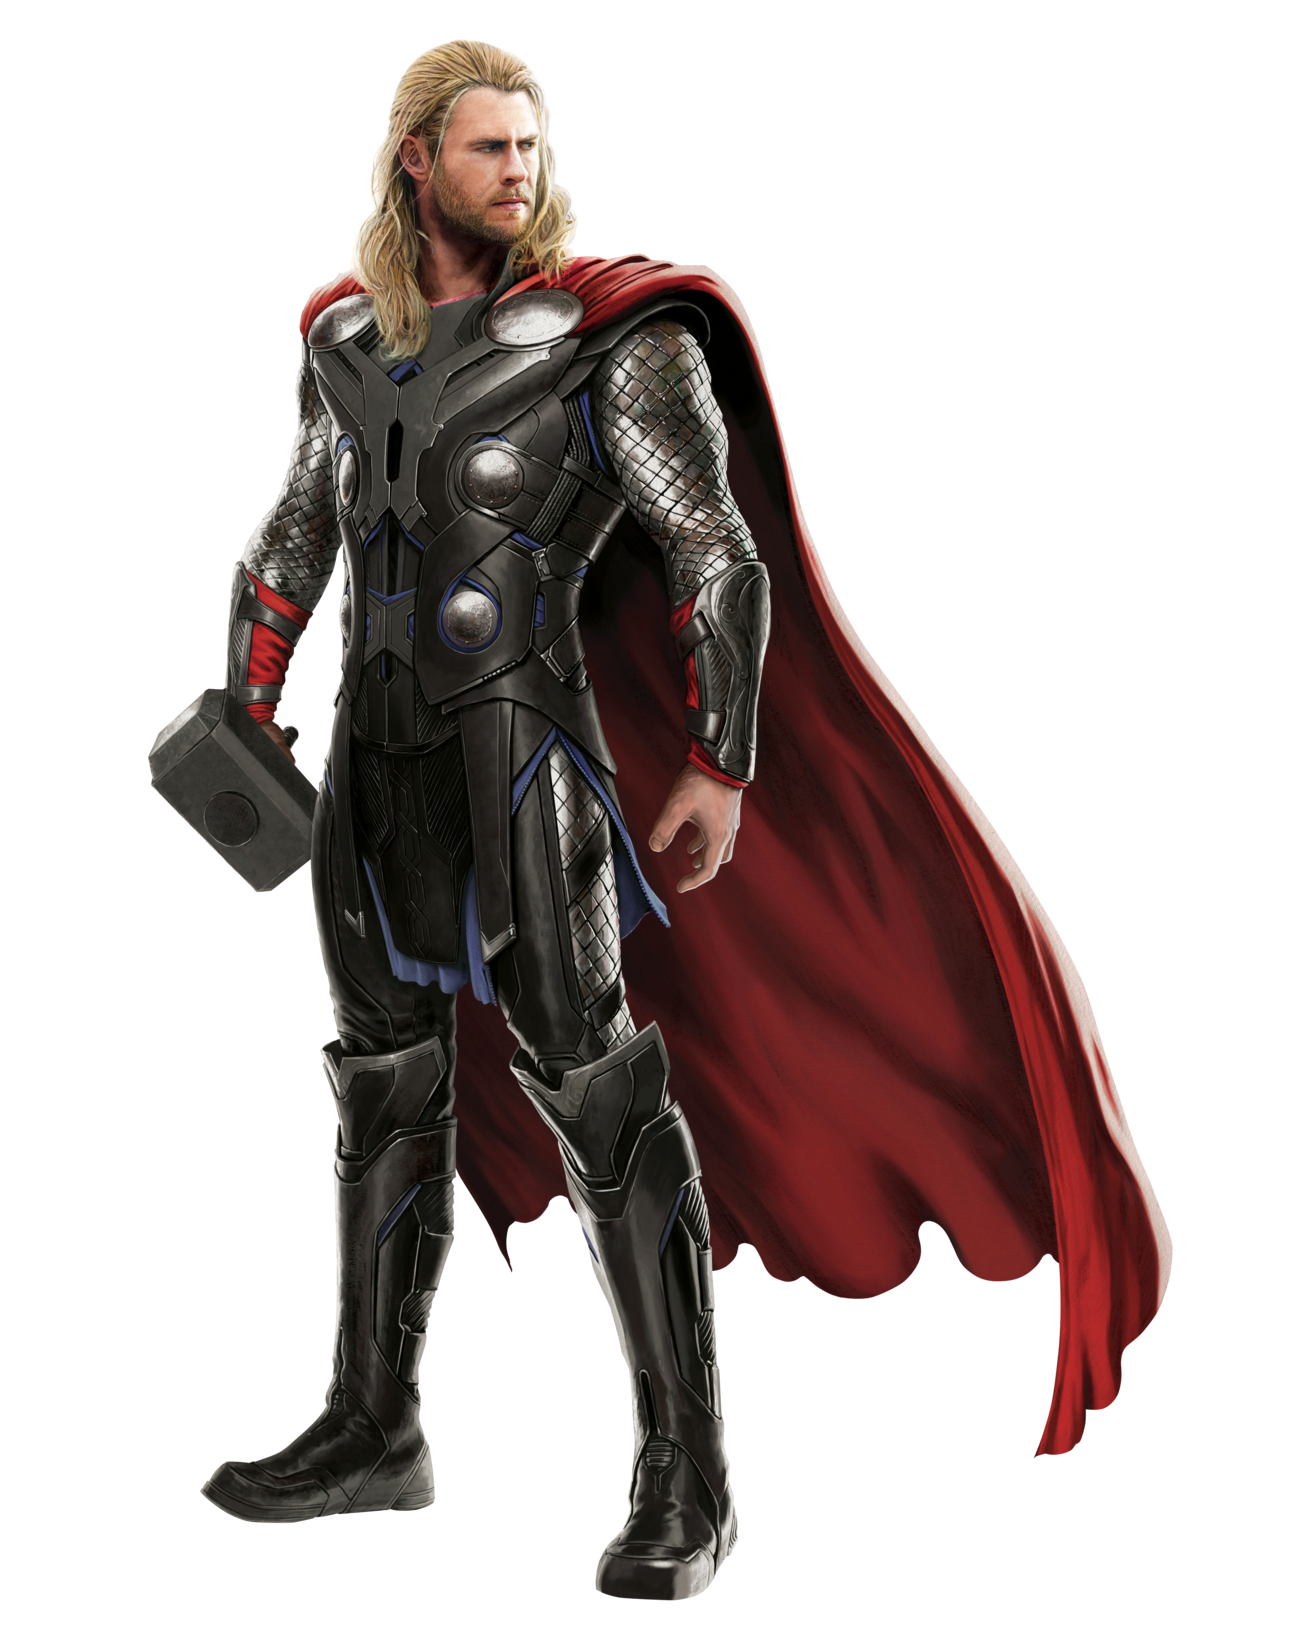 Thor cape png. Image aou marvel cinematic